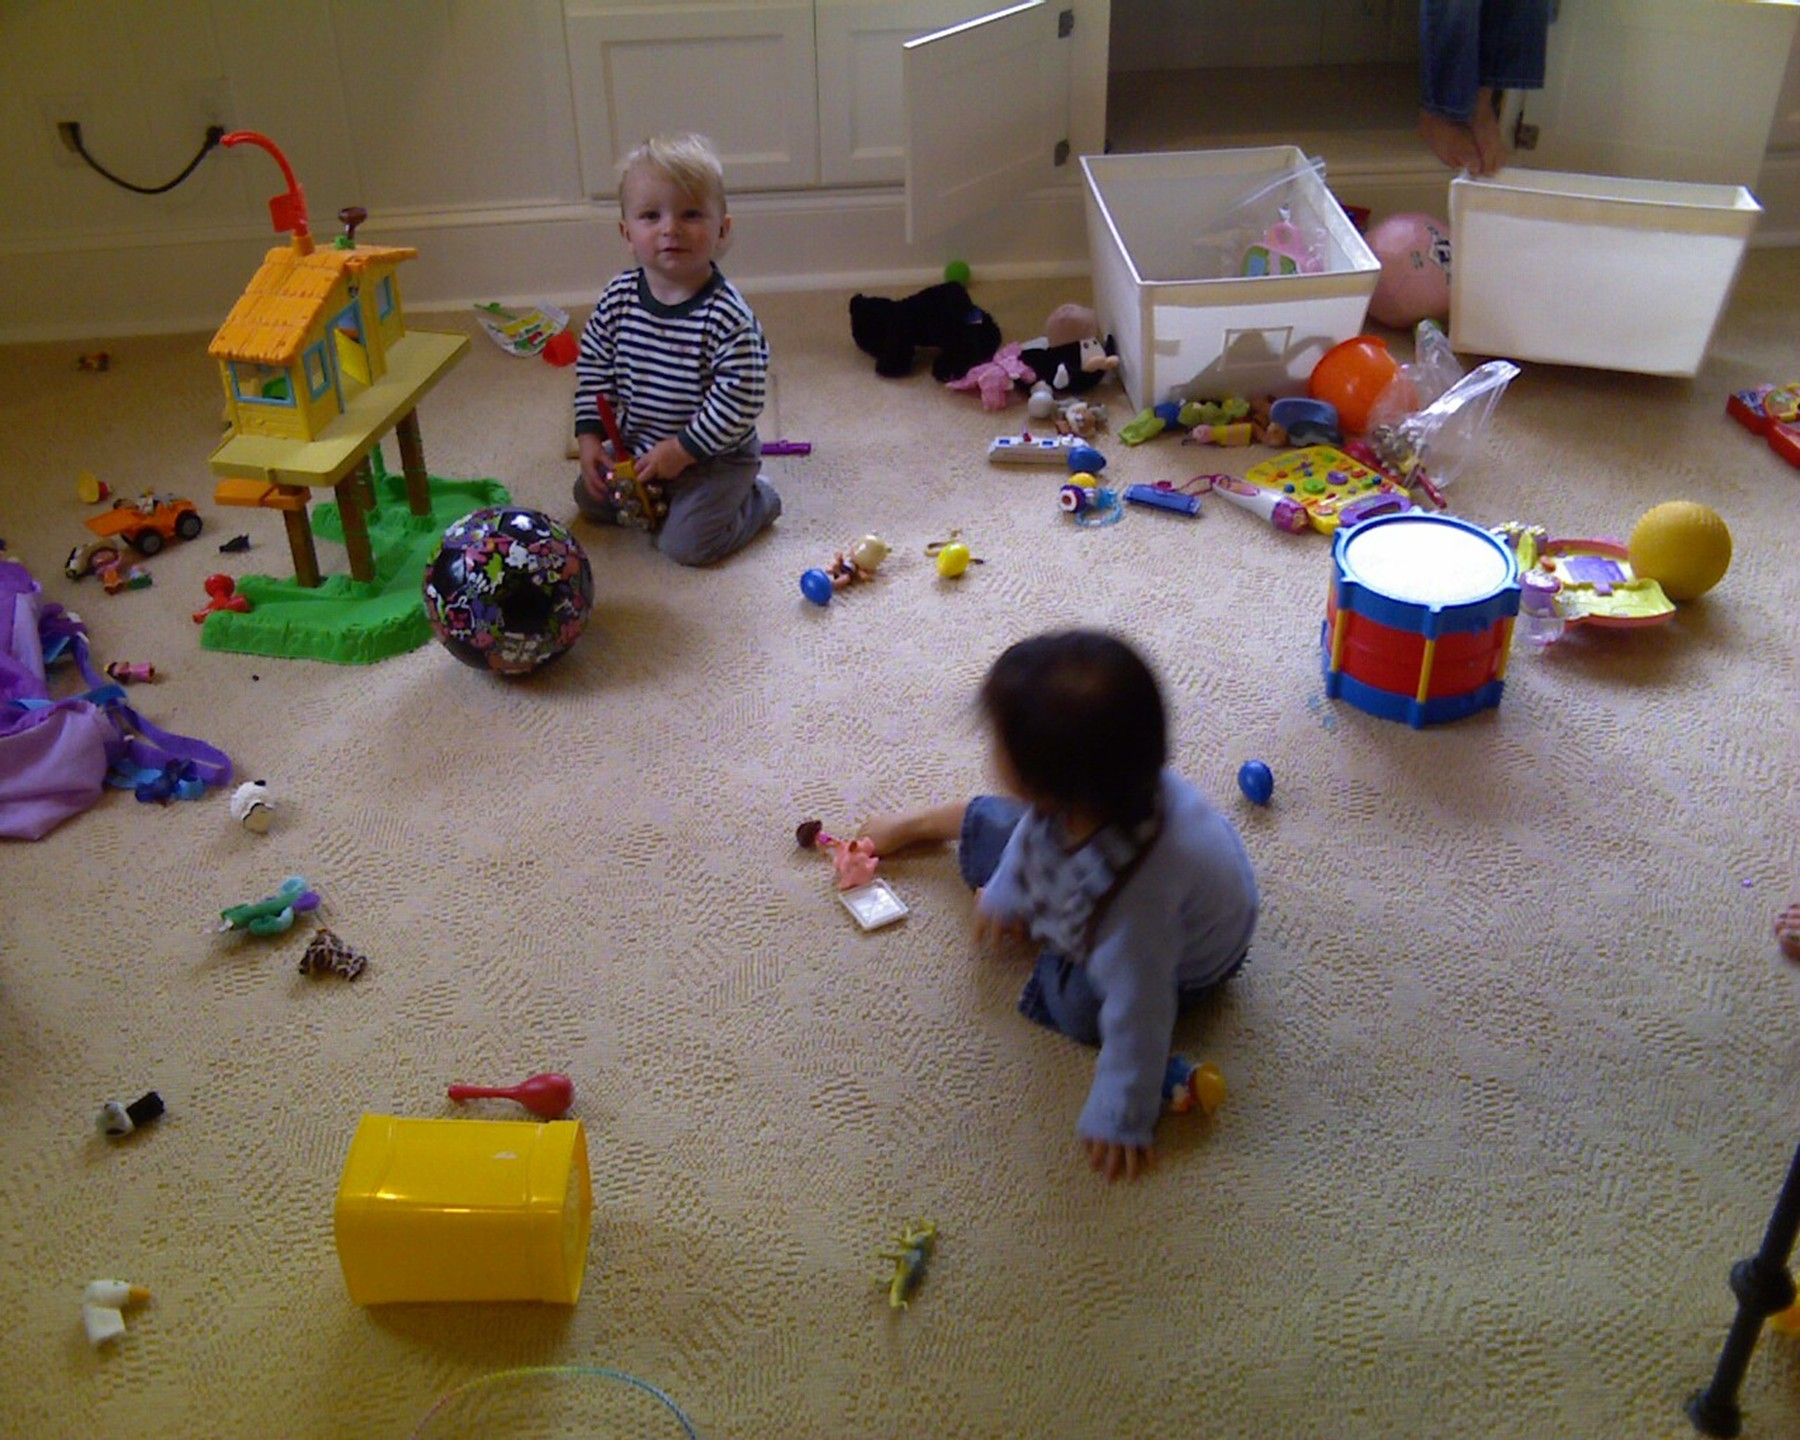 Jackson and Arianna playing